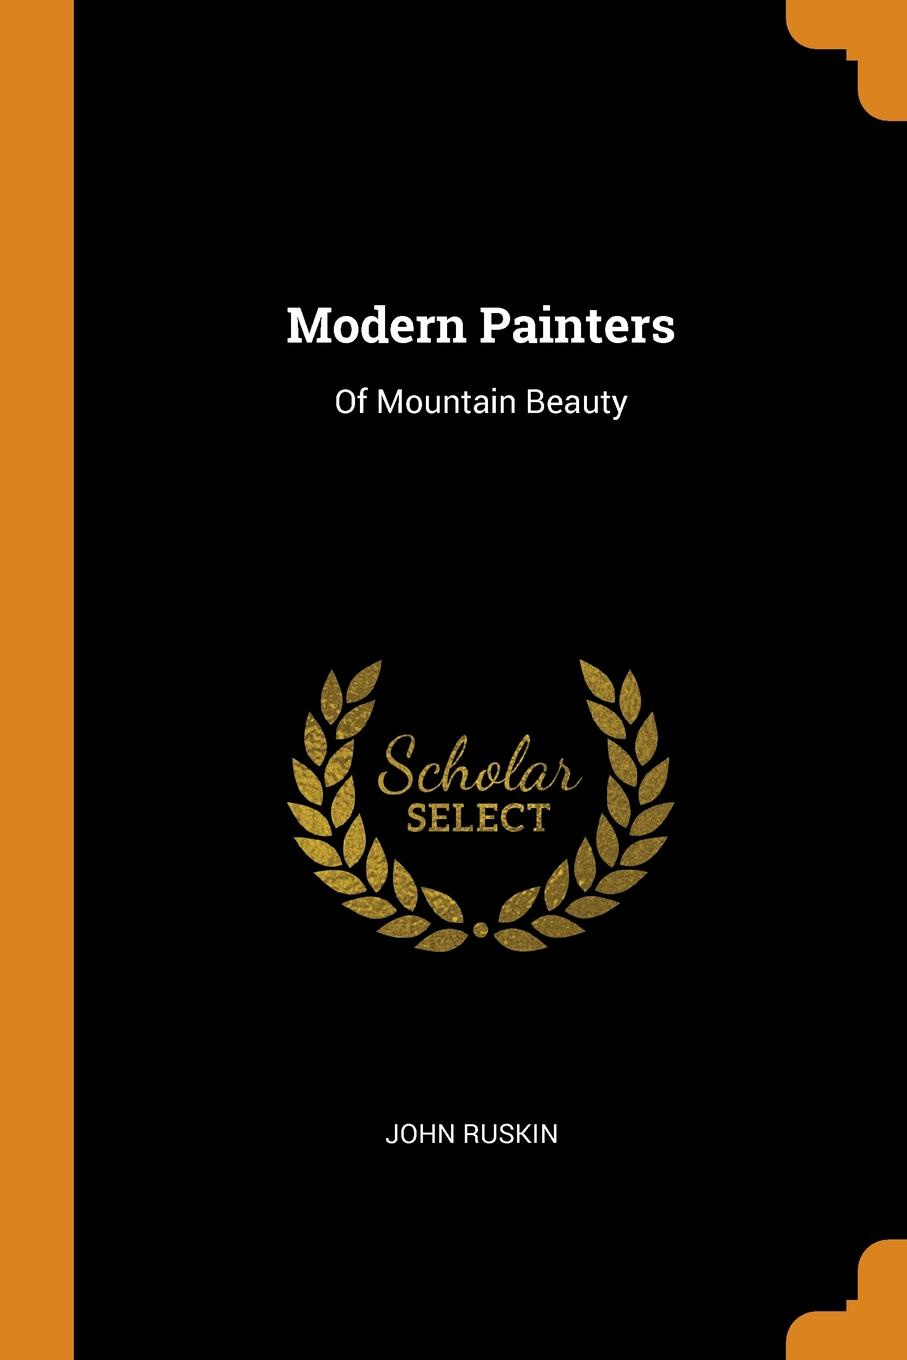 John Ruskin. Modern Painters. Of Mountain Beauty